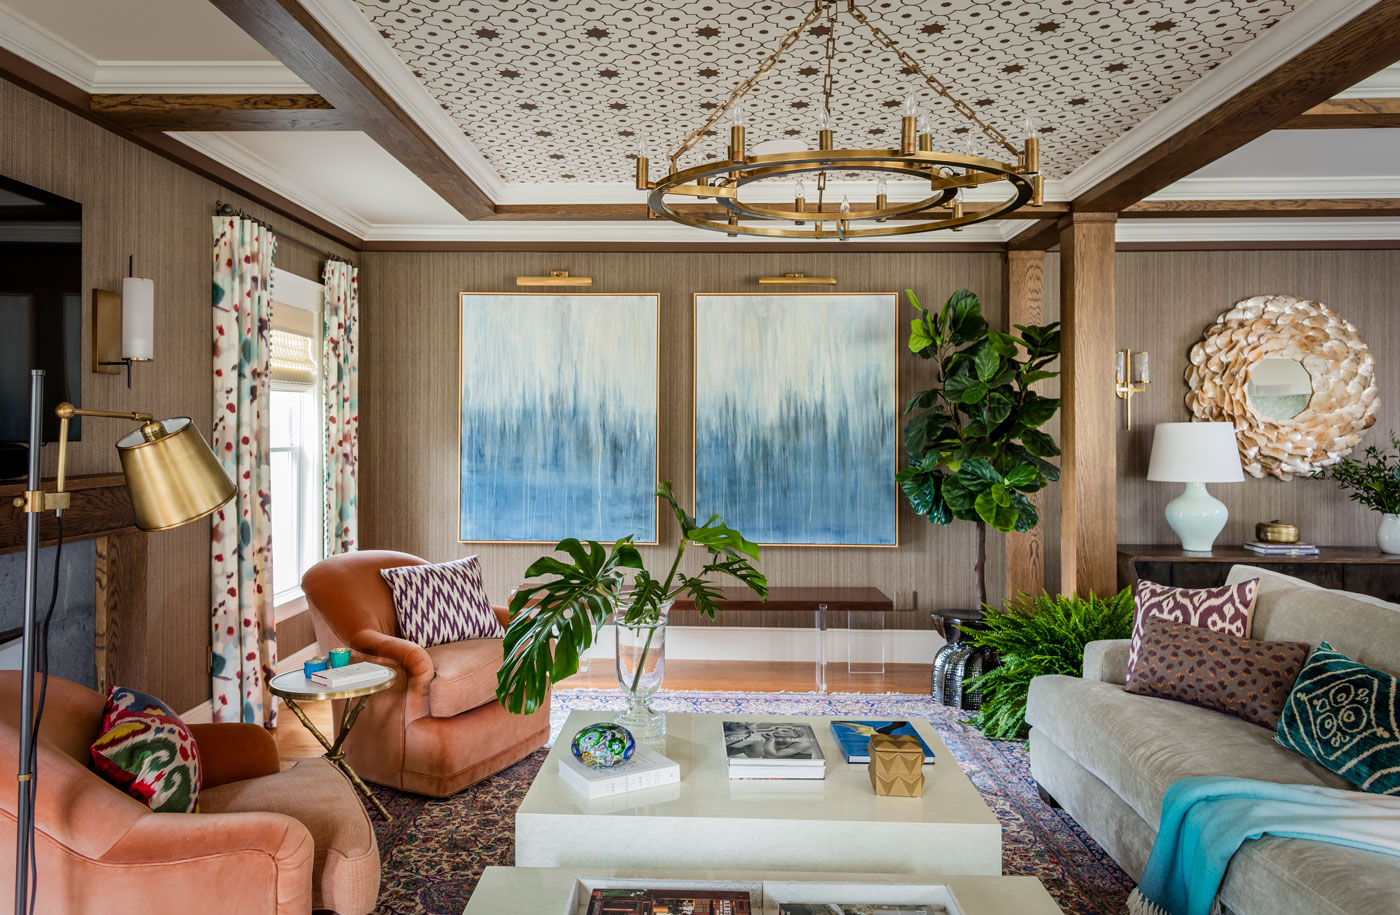 Redesigned Family room with custom ceiling blue abstract paintings on the wall and coral chairs